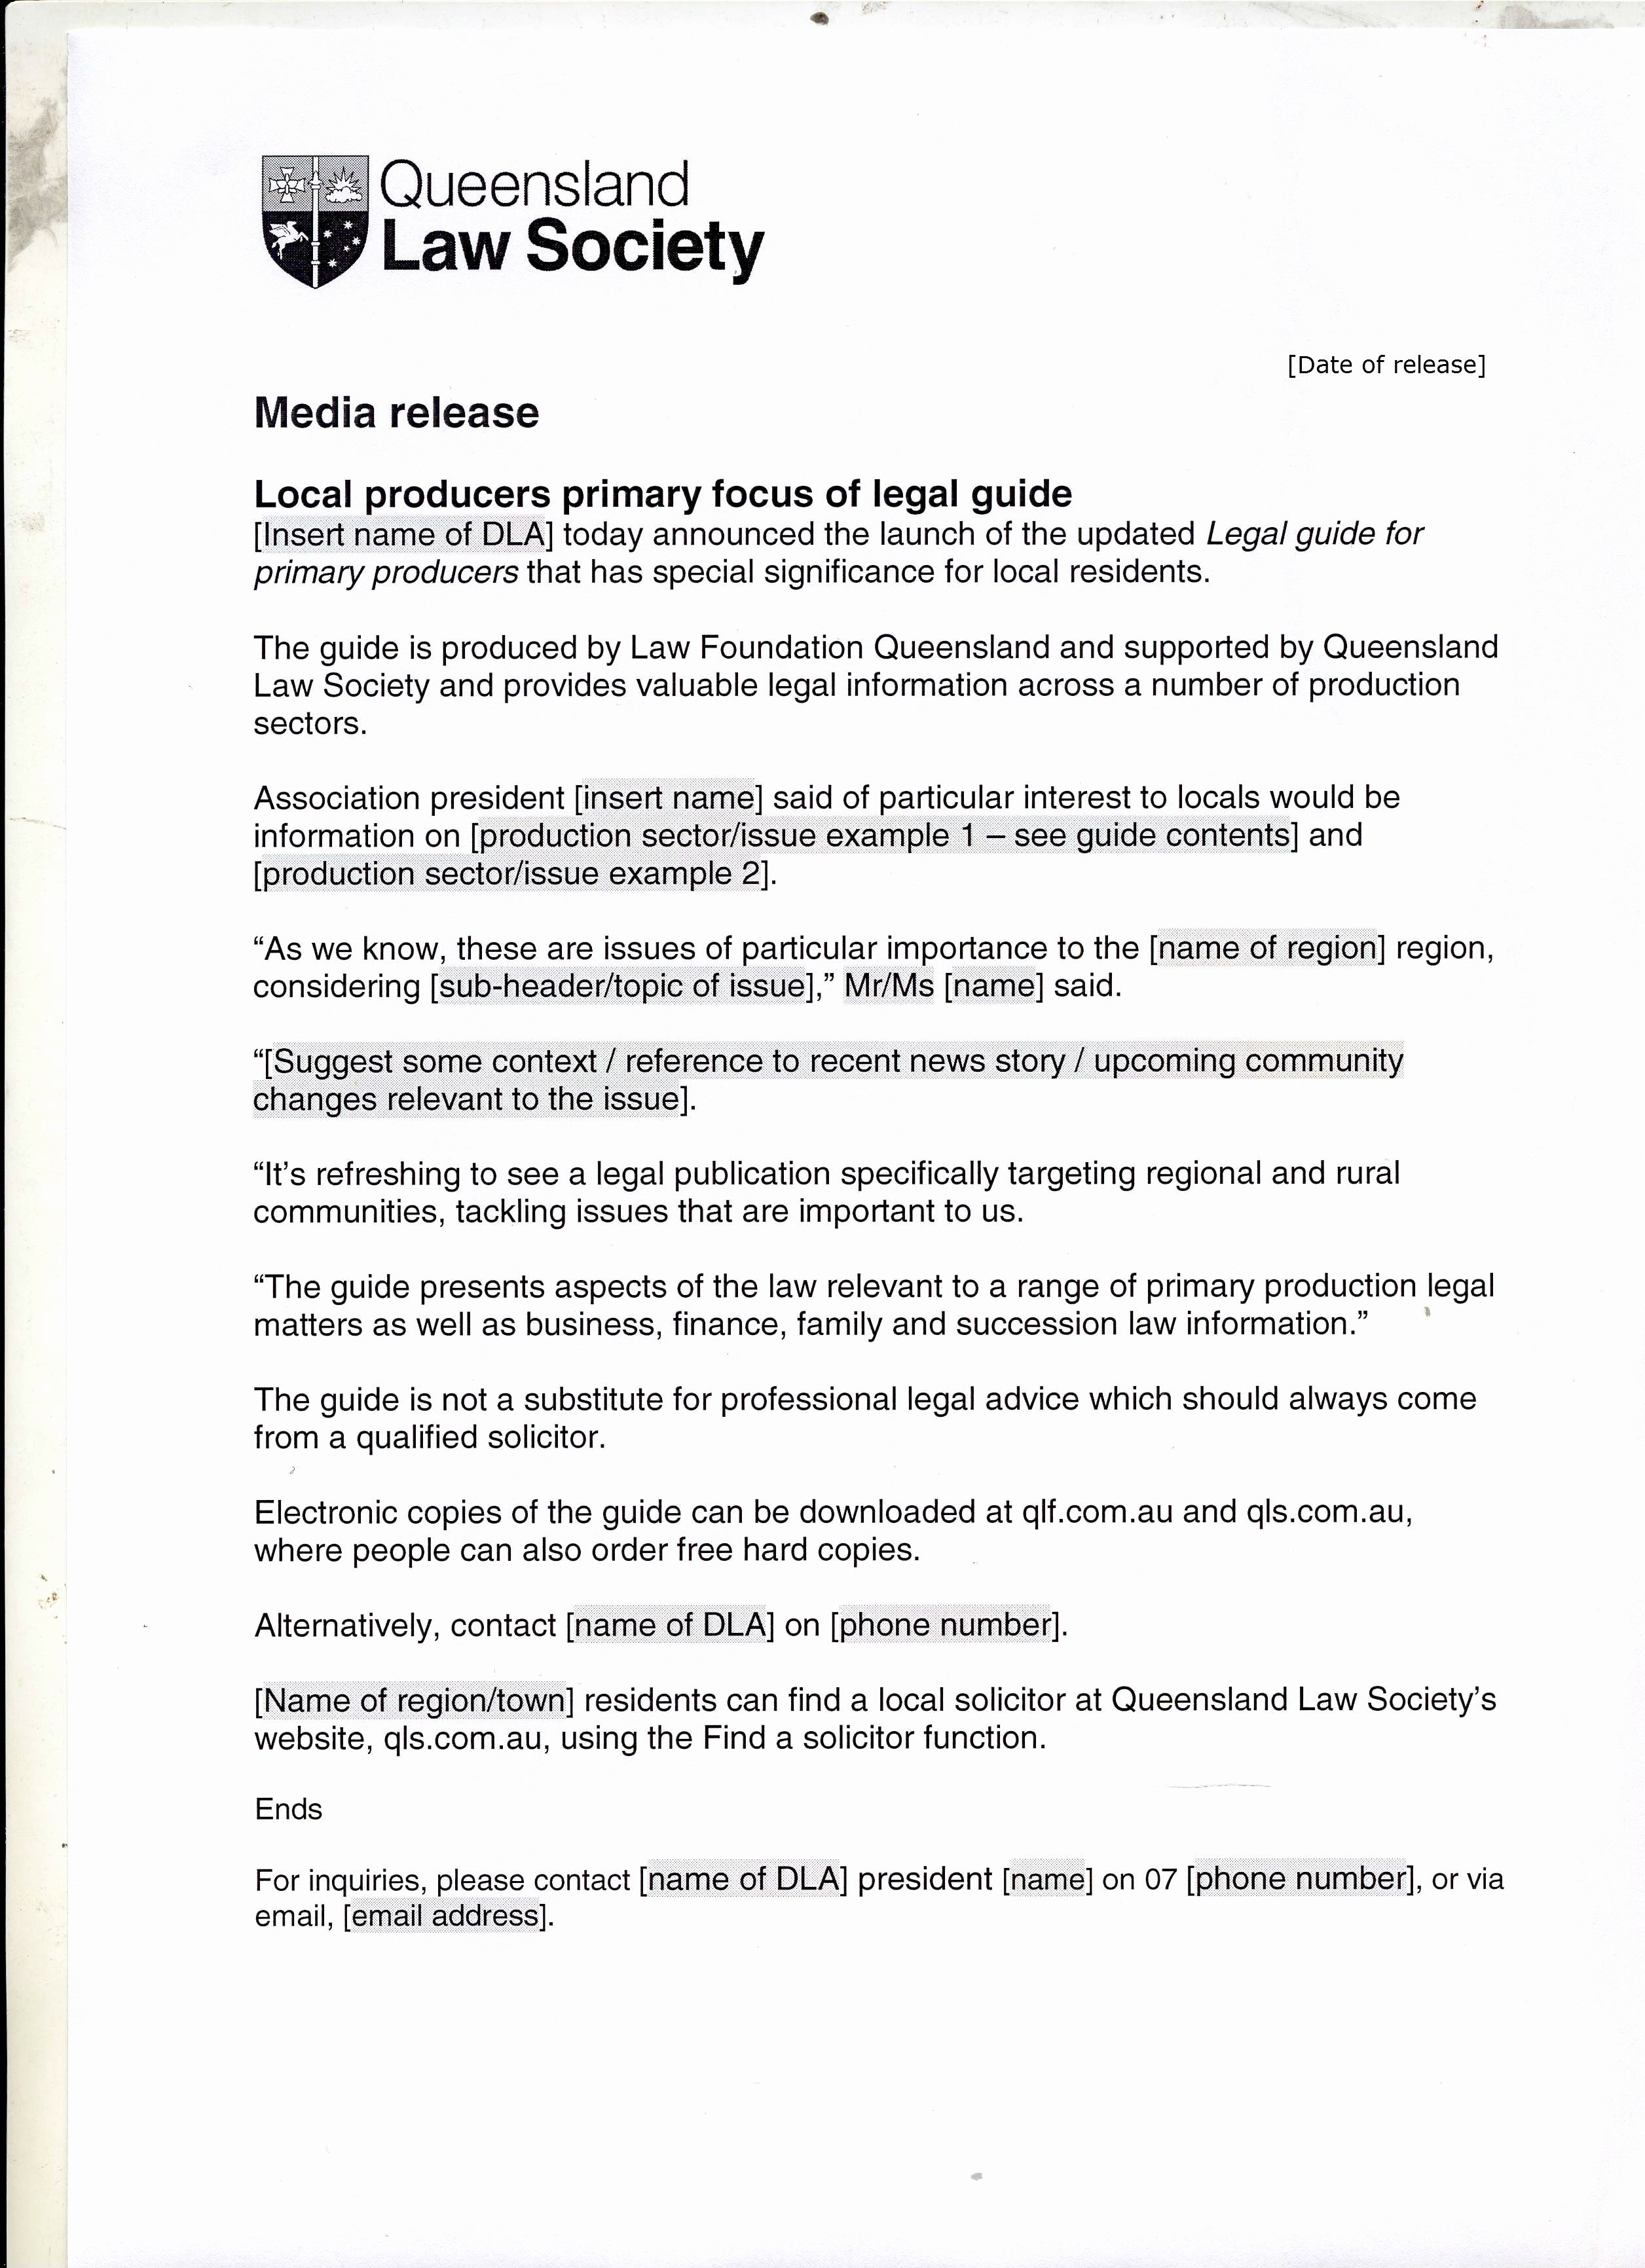 Media Release form Template Elegant Media Release Template Local Producers Primary Focus Of